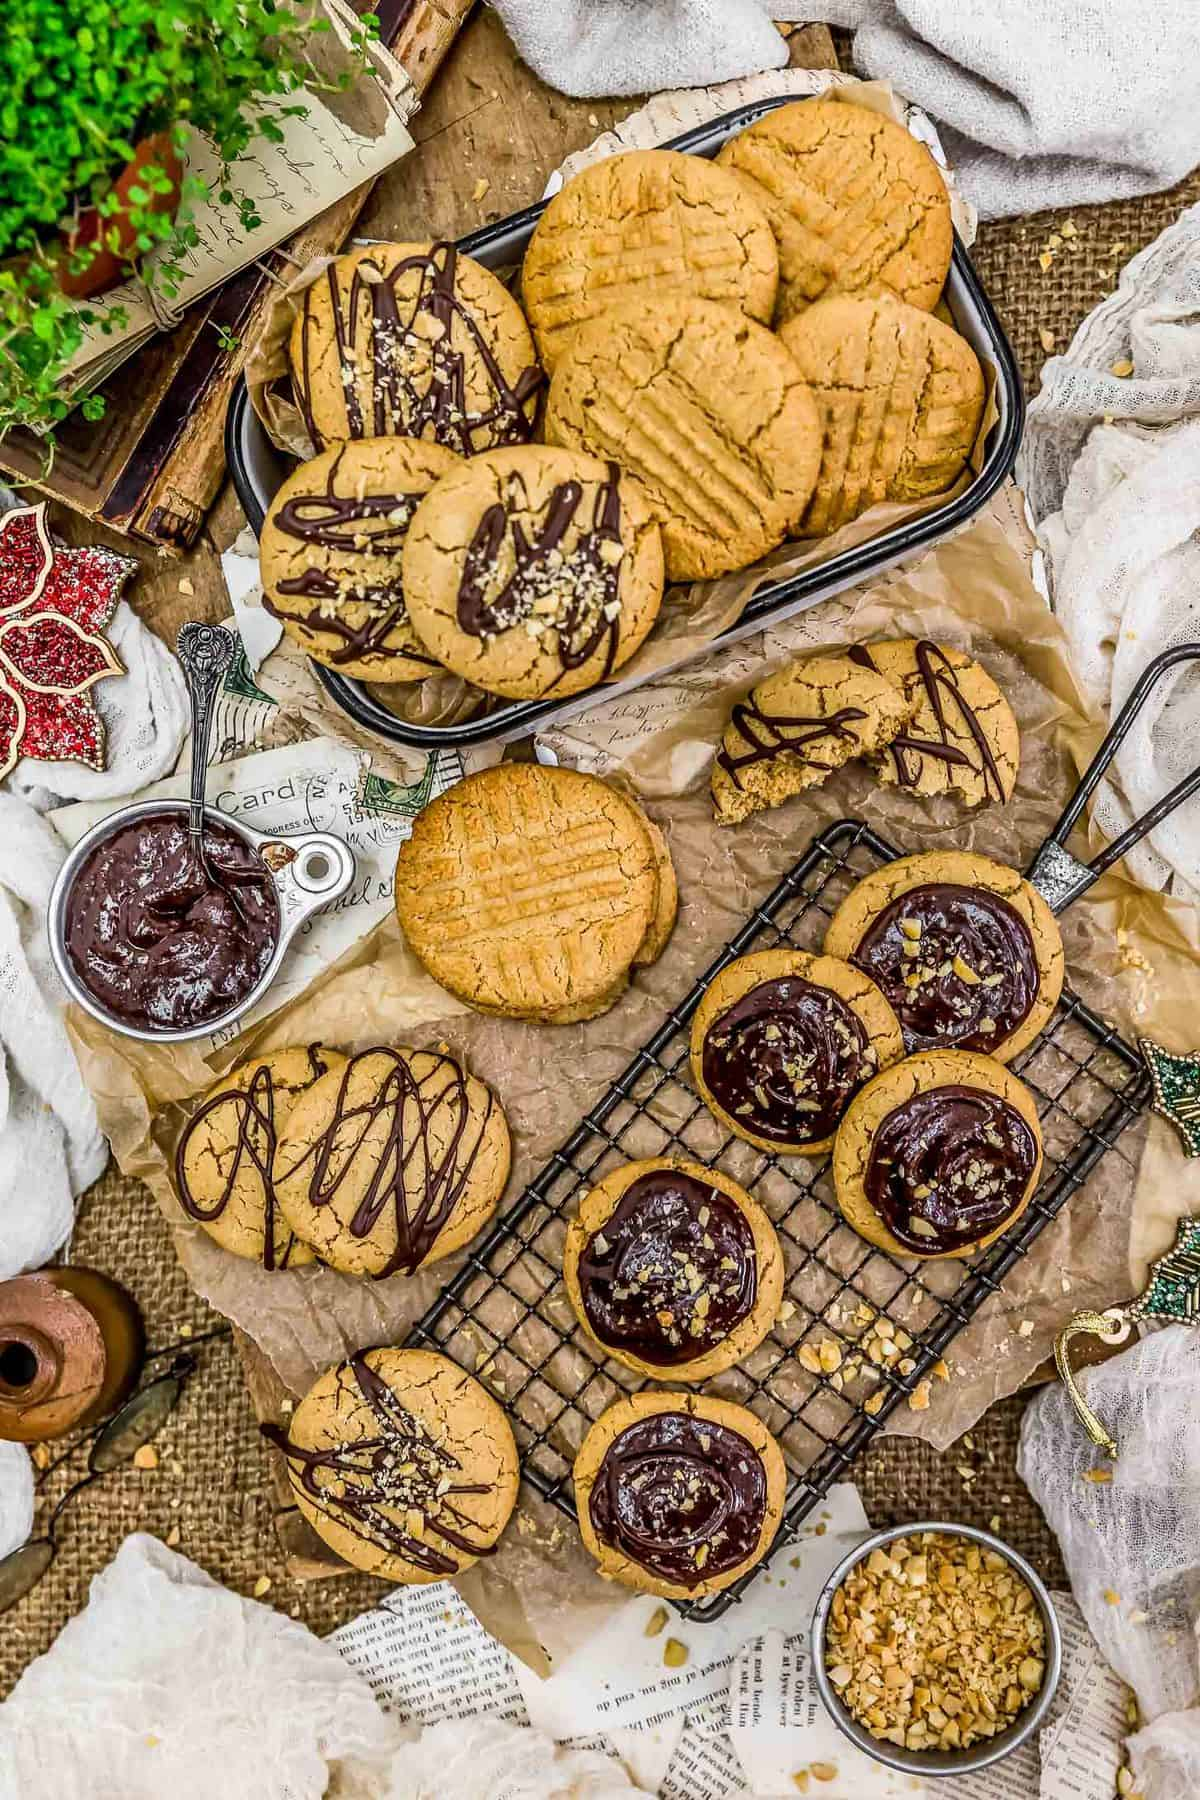 Tablescape of Peanut Butter Shortbread Cookies